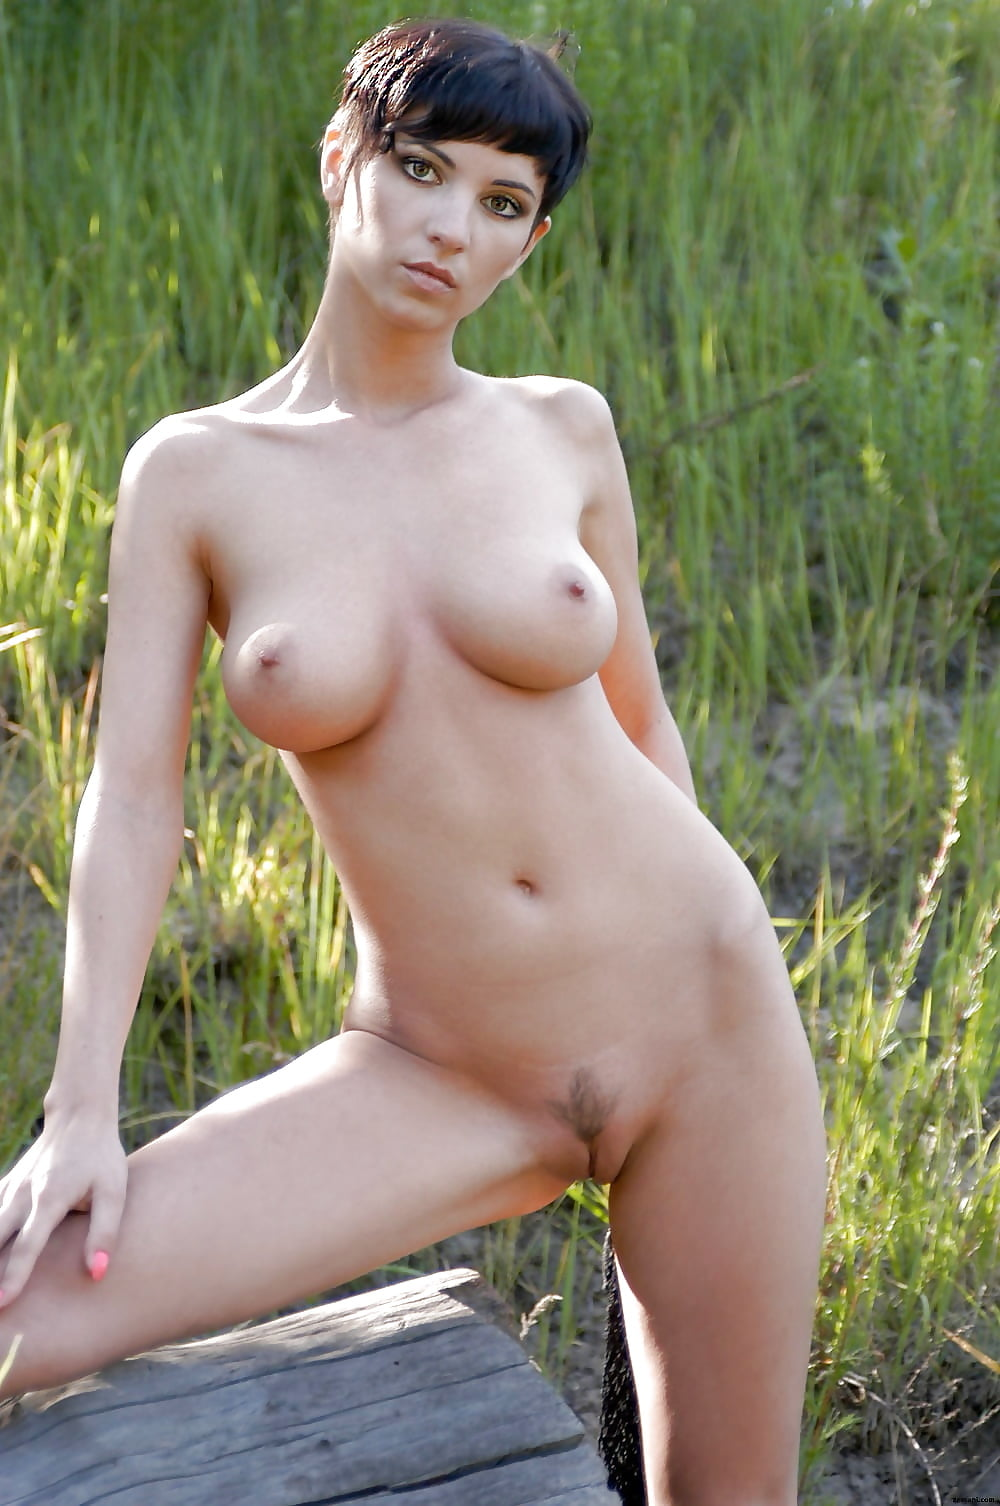 Short haired blonde woman nude — pic 13